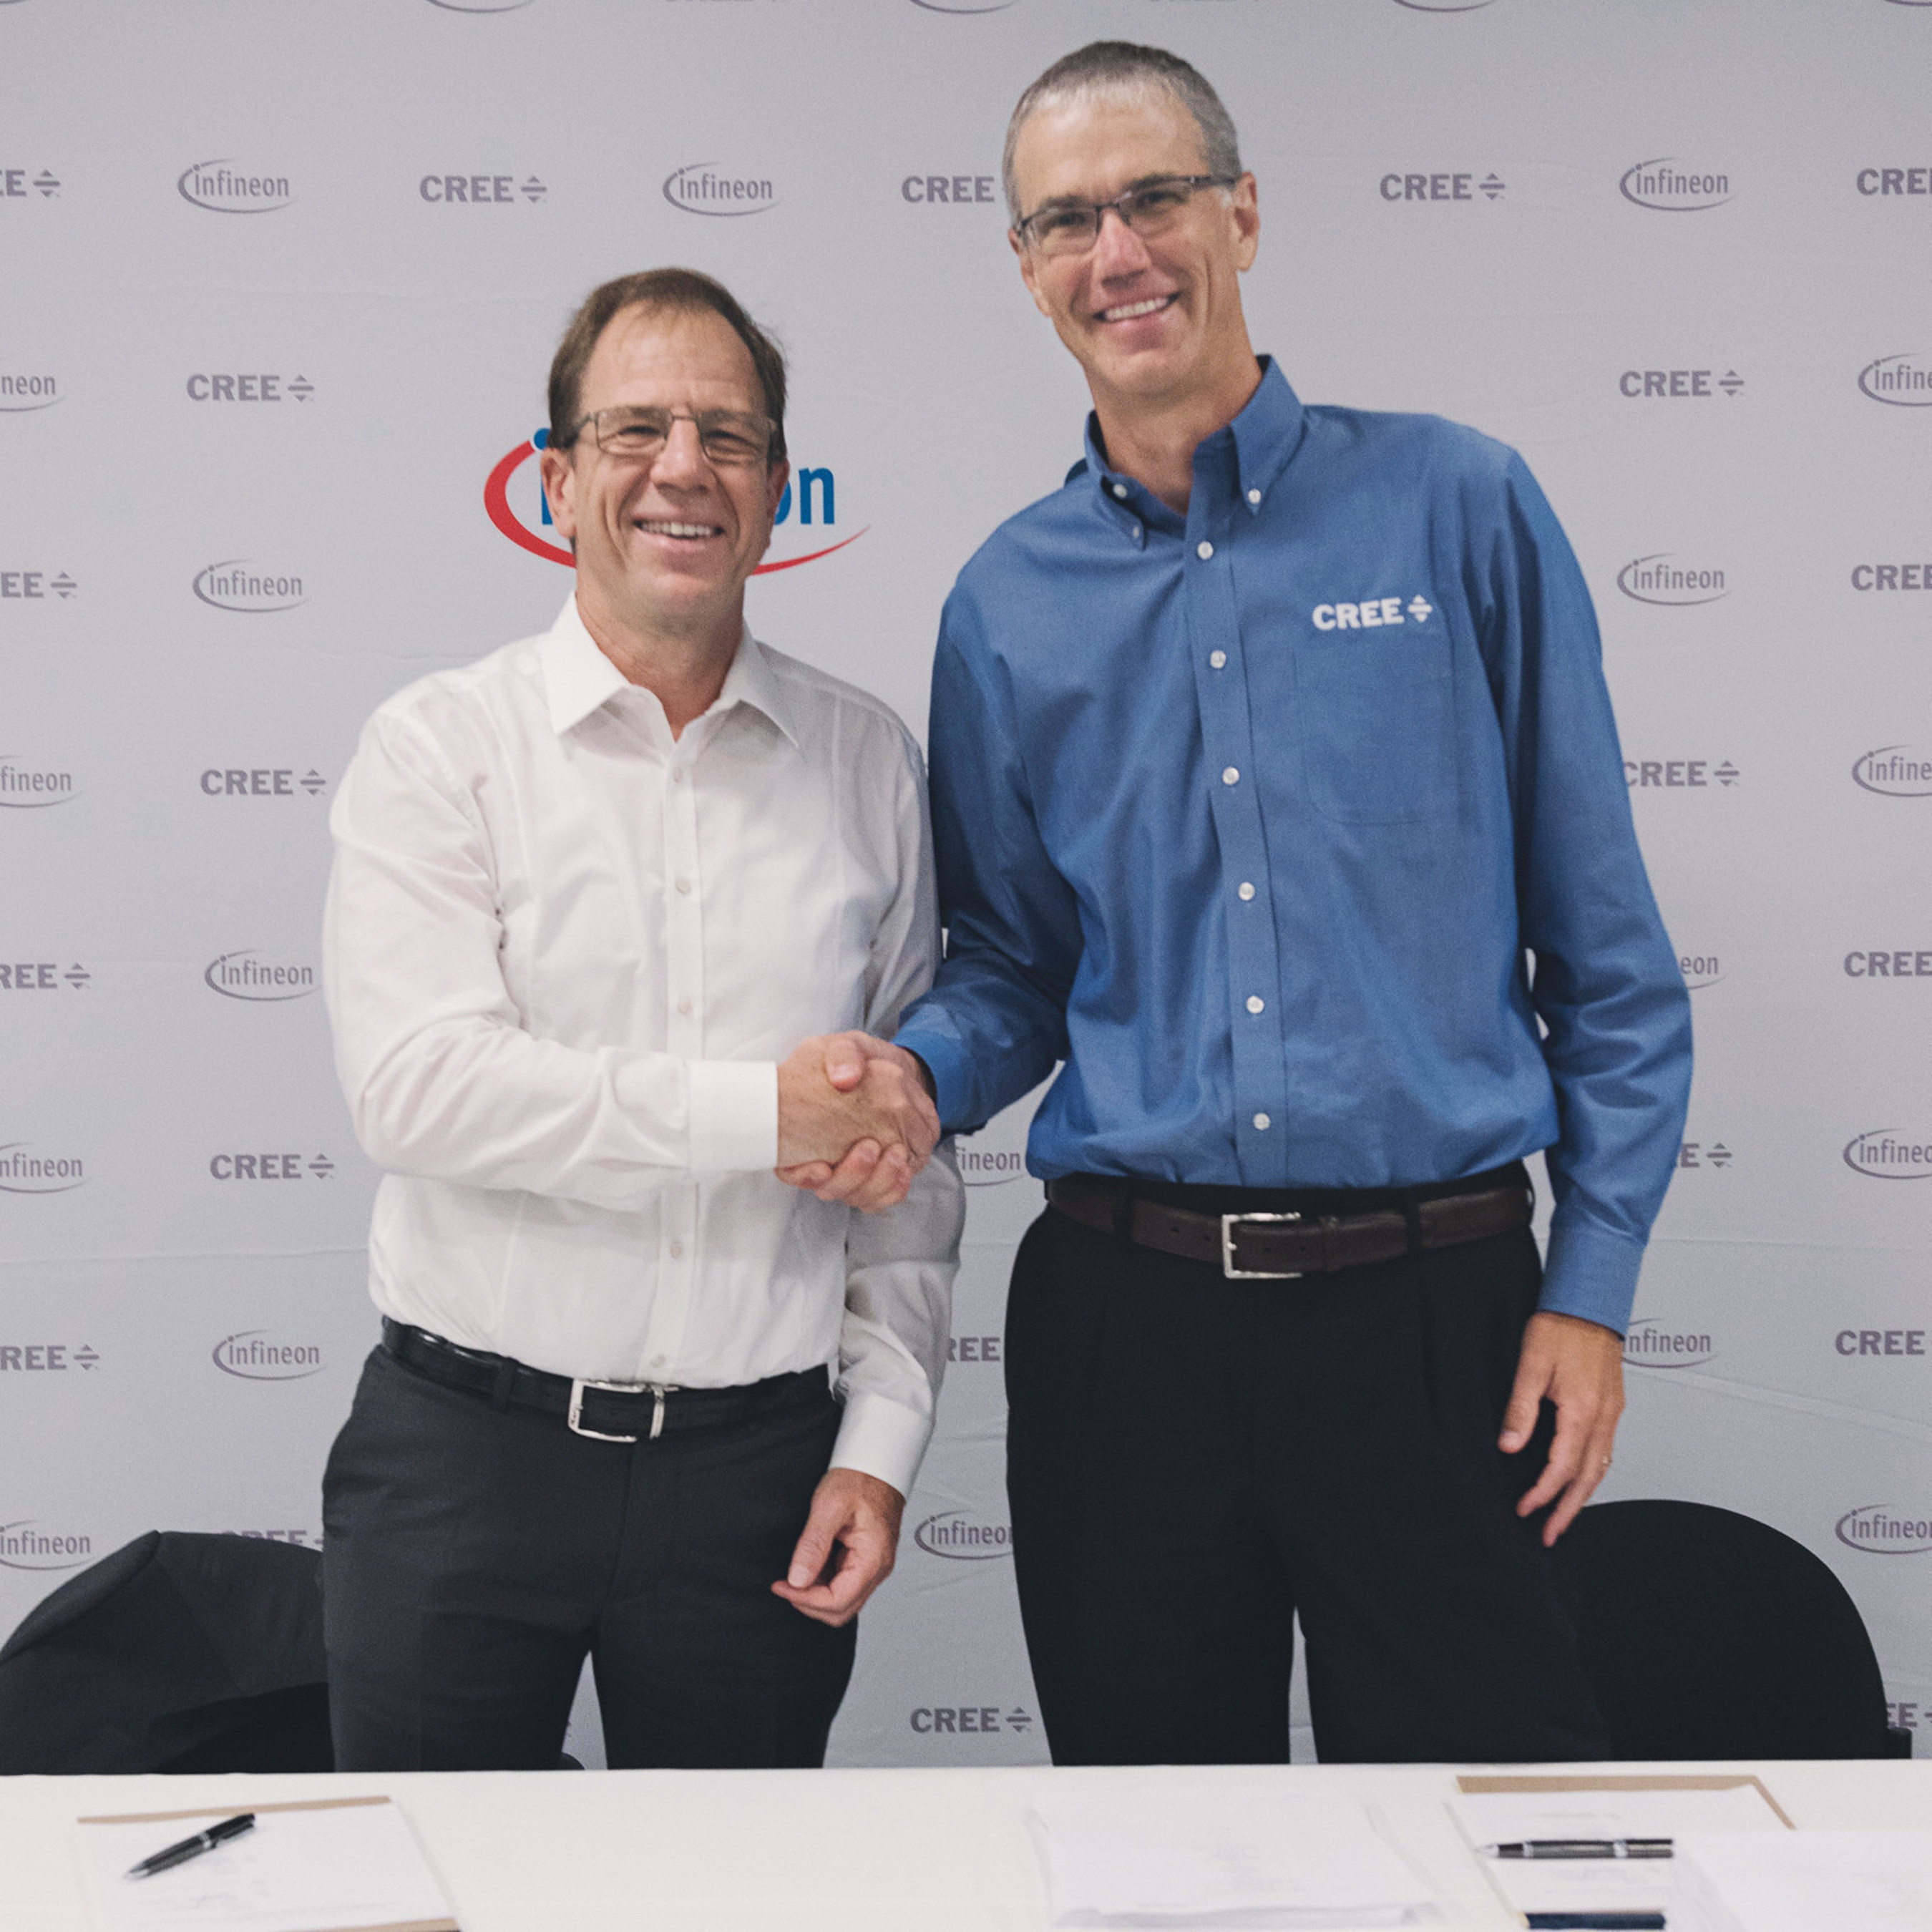 Infineon to acquire Wolfspeed for US Dollar 850 million in cash